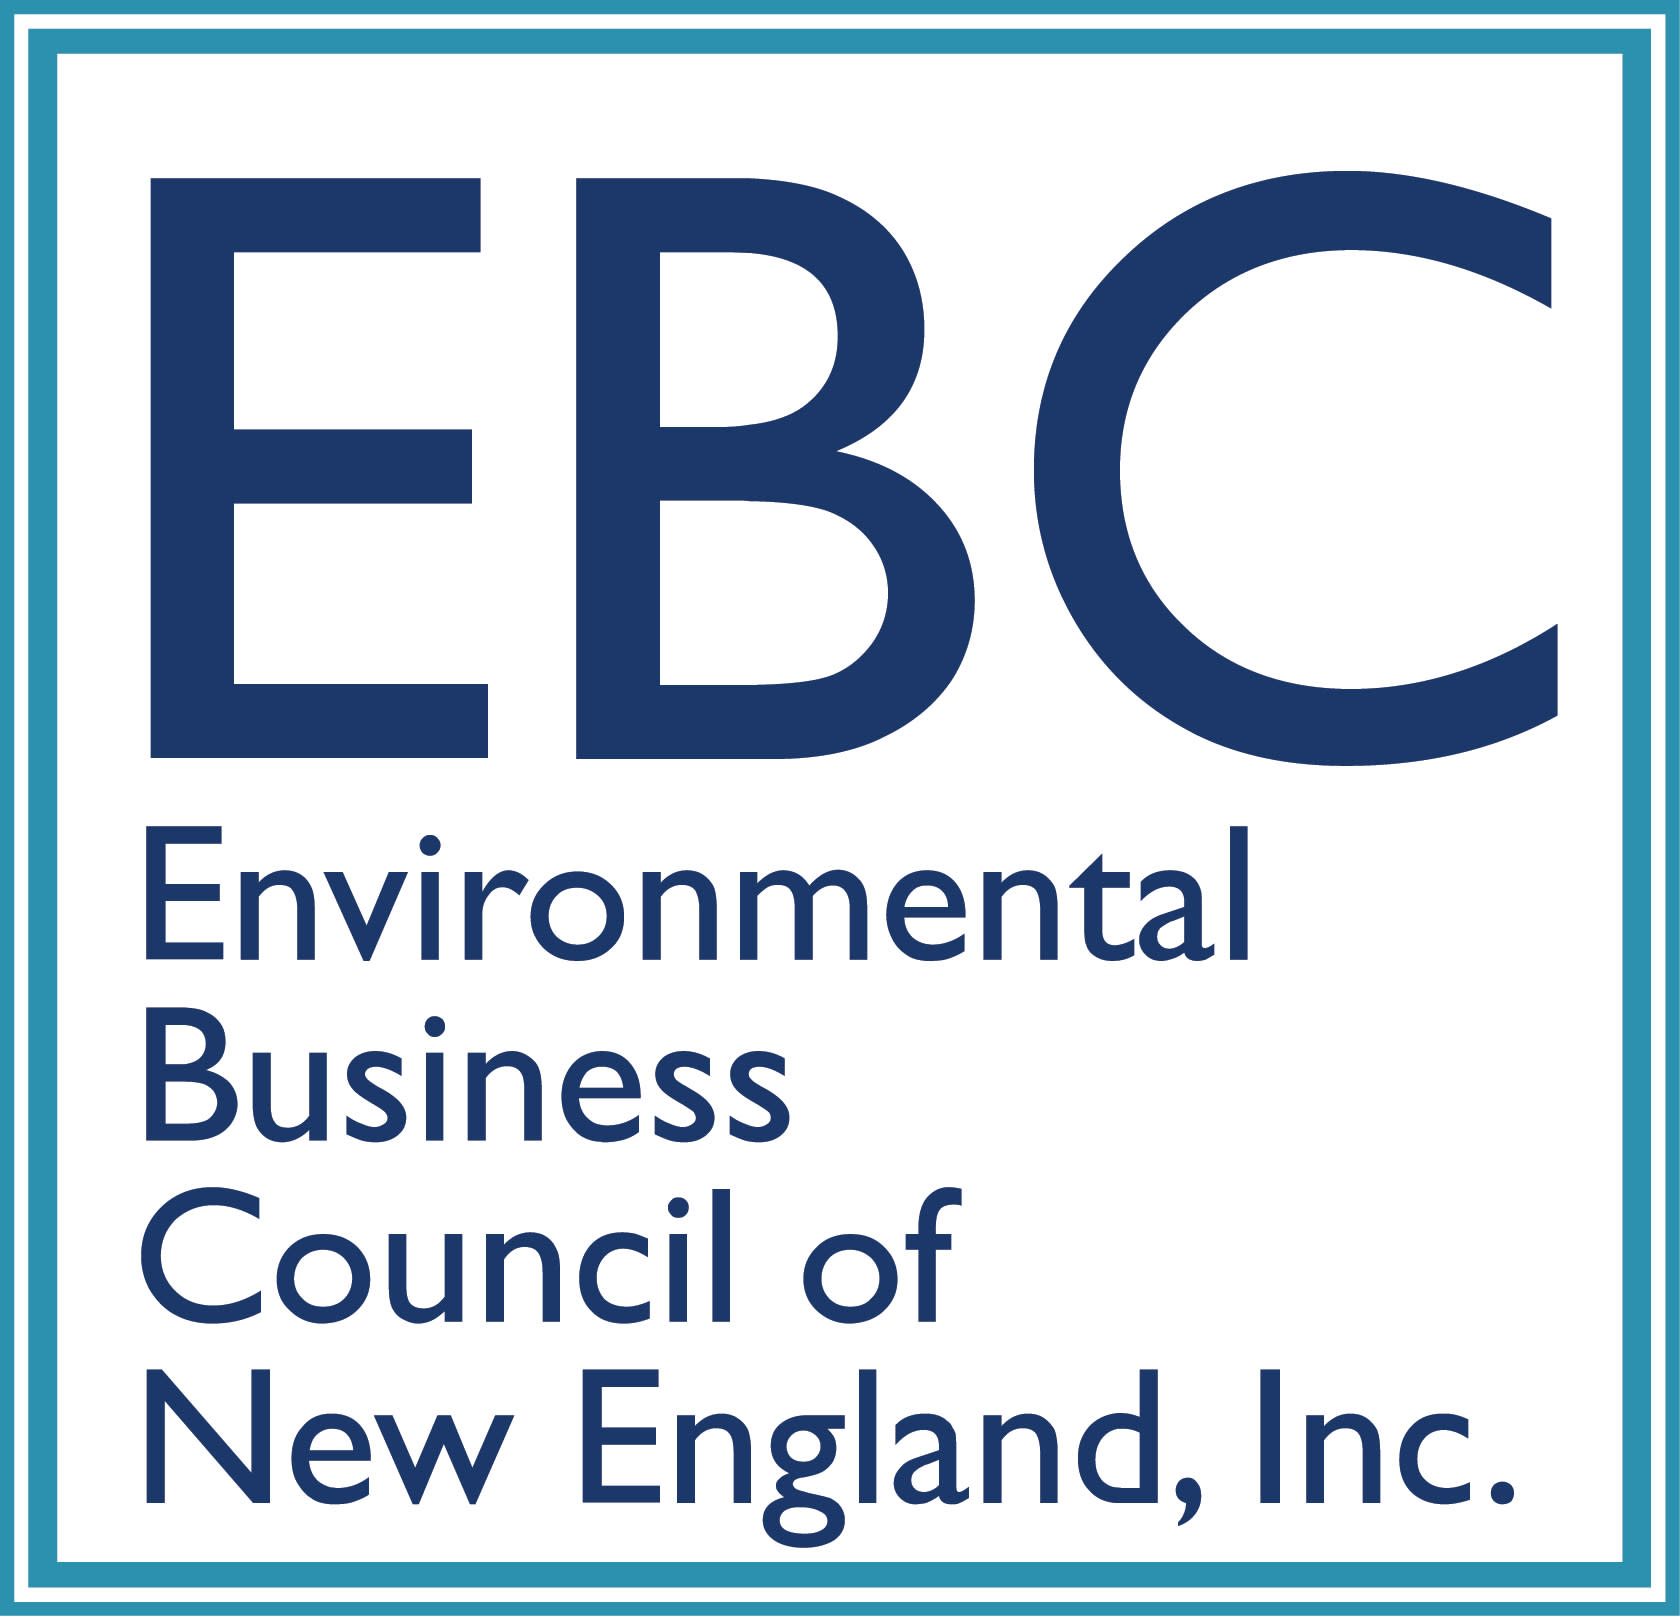 Environmental Business Council of New England